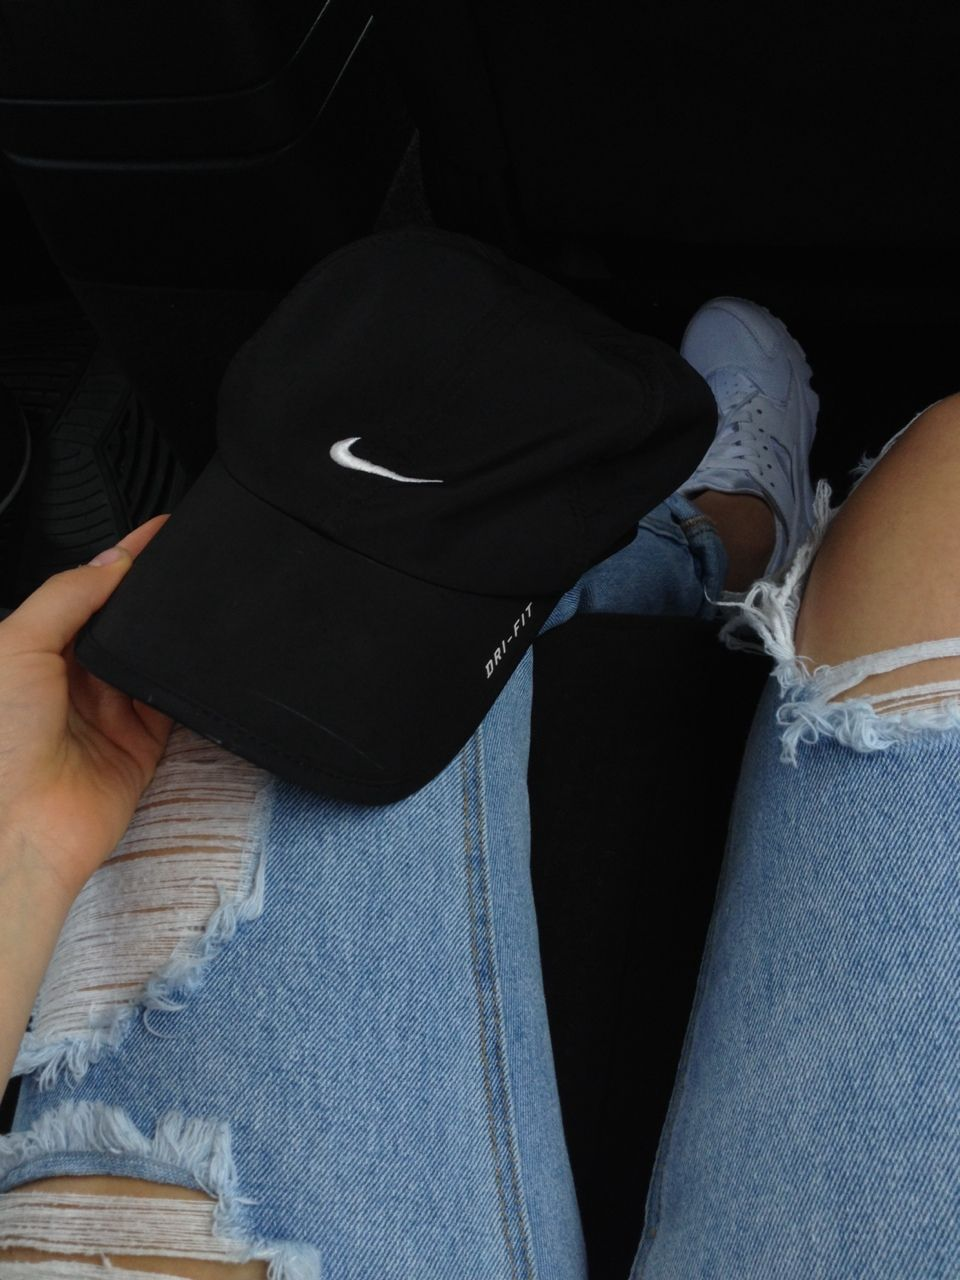 Want me a Nike hat